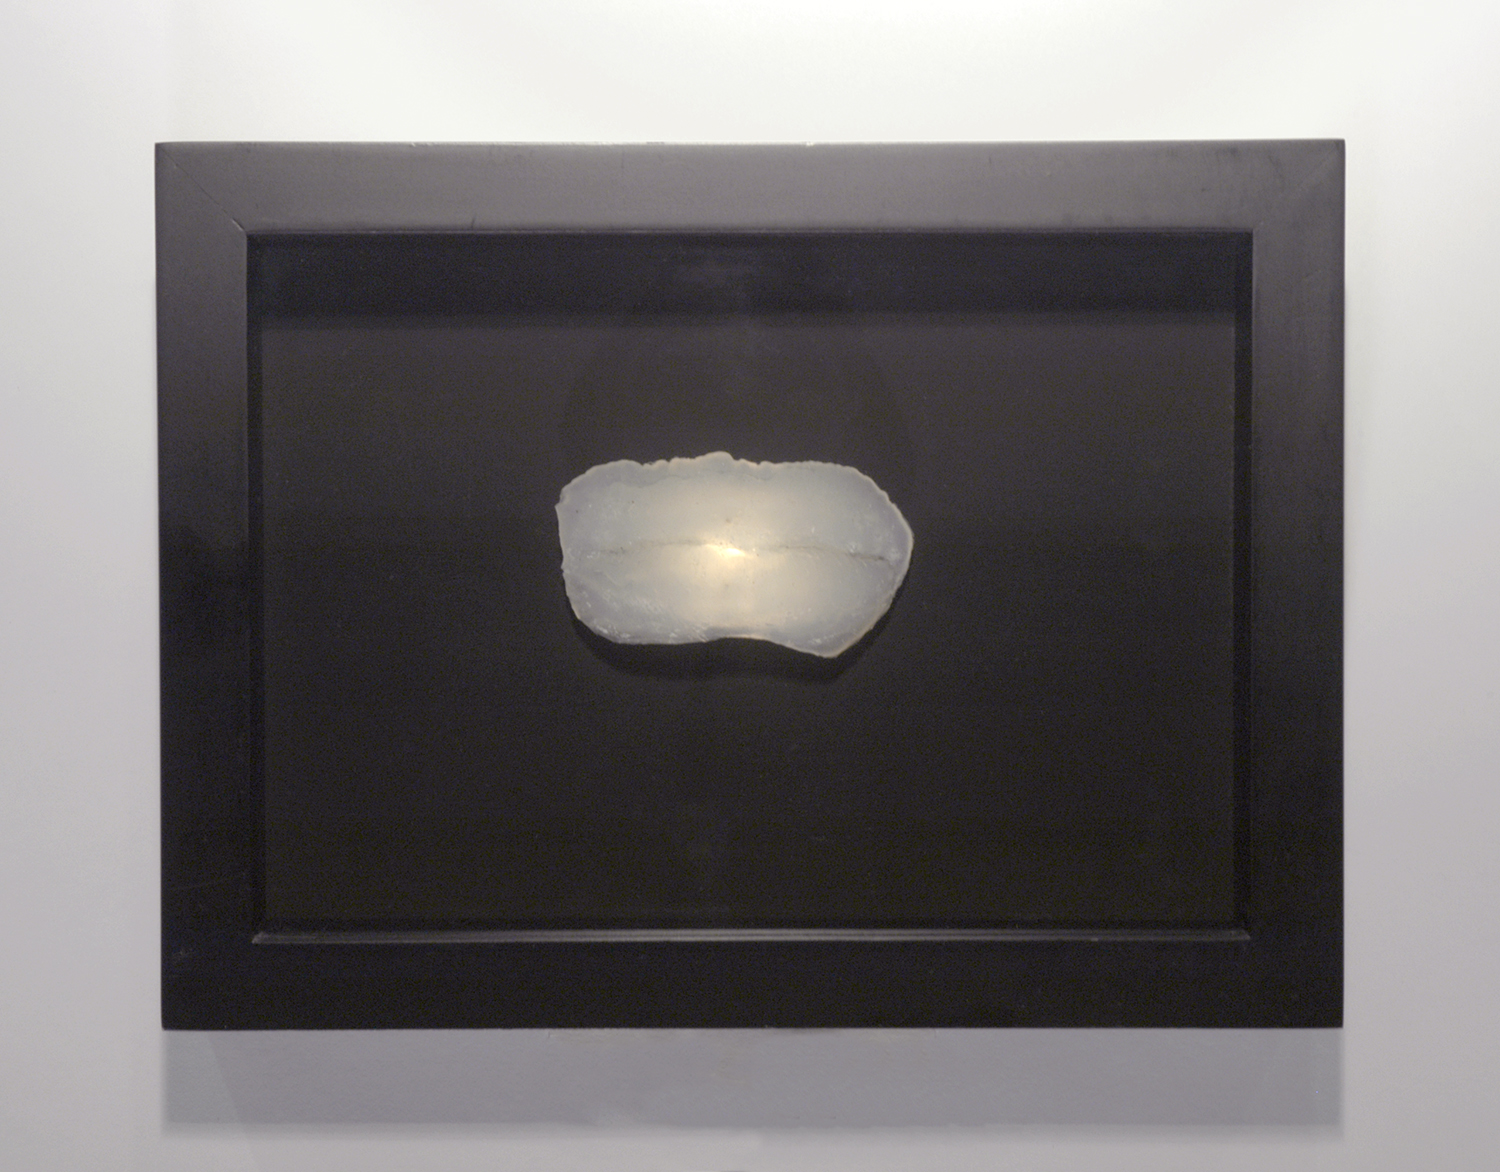 Samples, Jenny's Lips , 2003, silicone imprint, light and box frame.